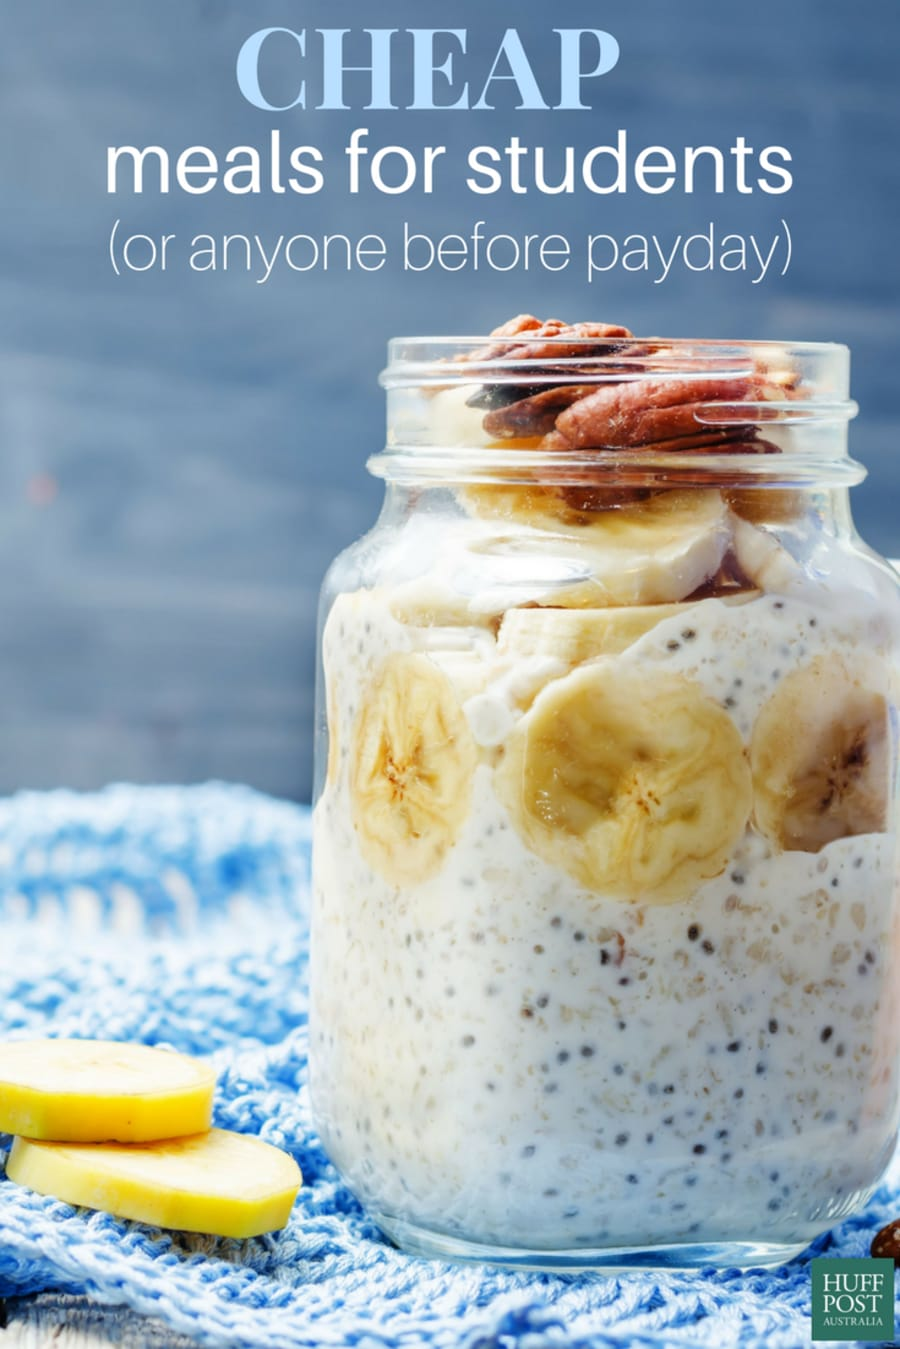 Broke before payday try these 10 cheap and tasty recipes getty forumfinder Gallery